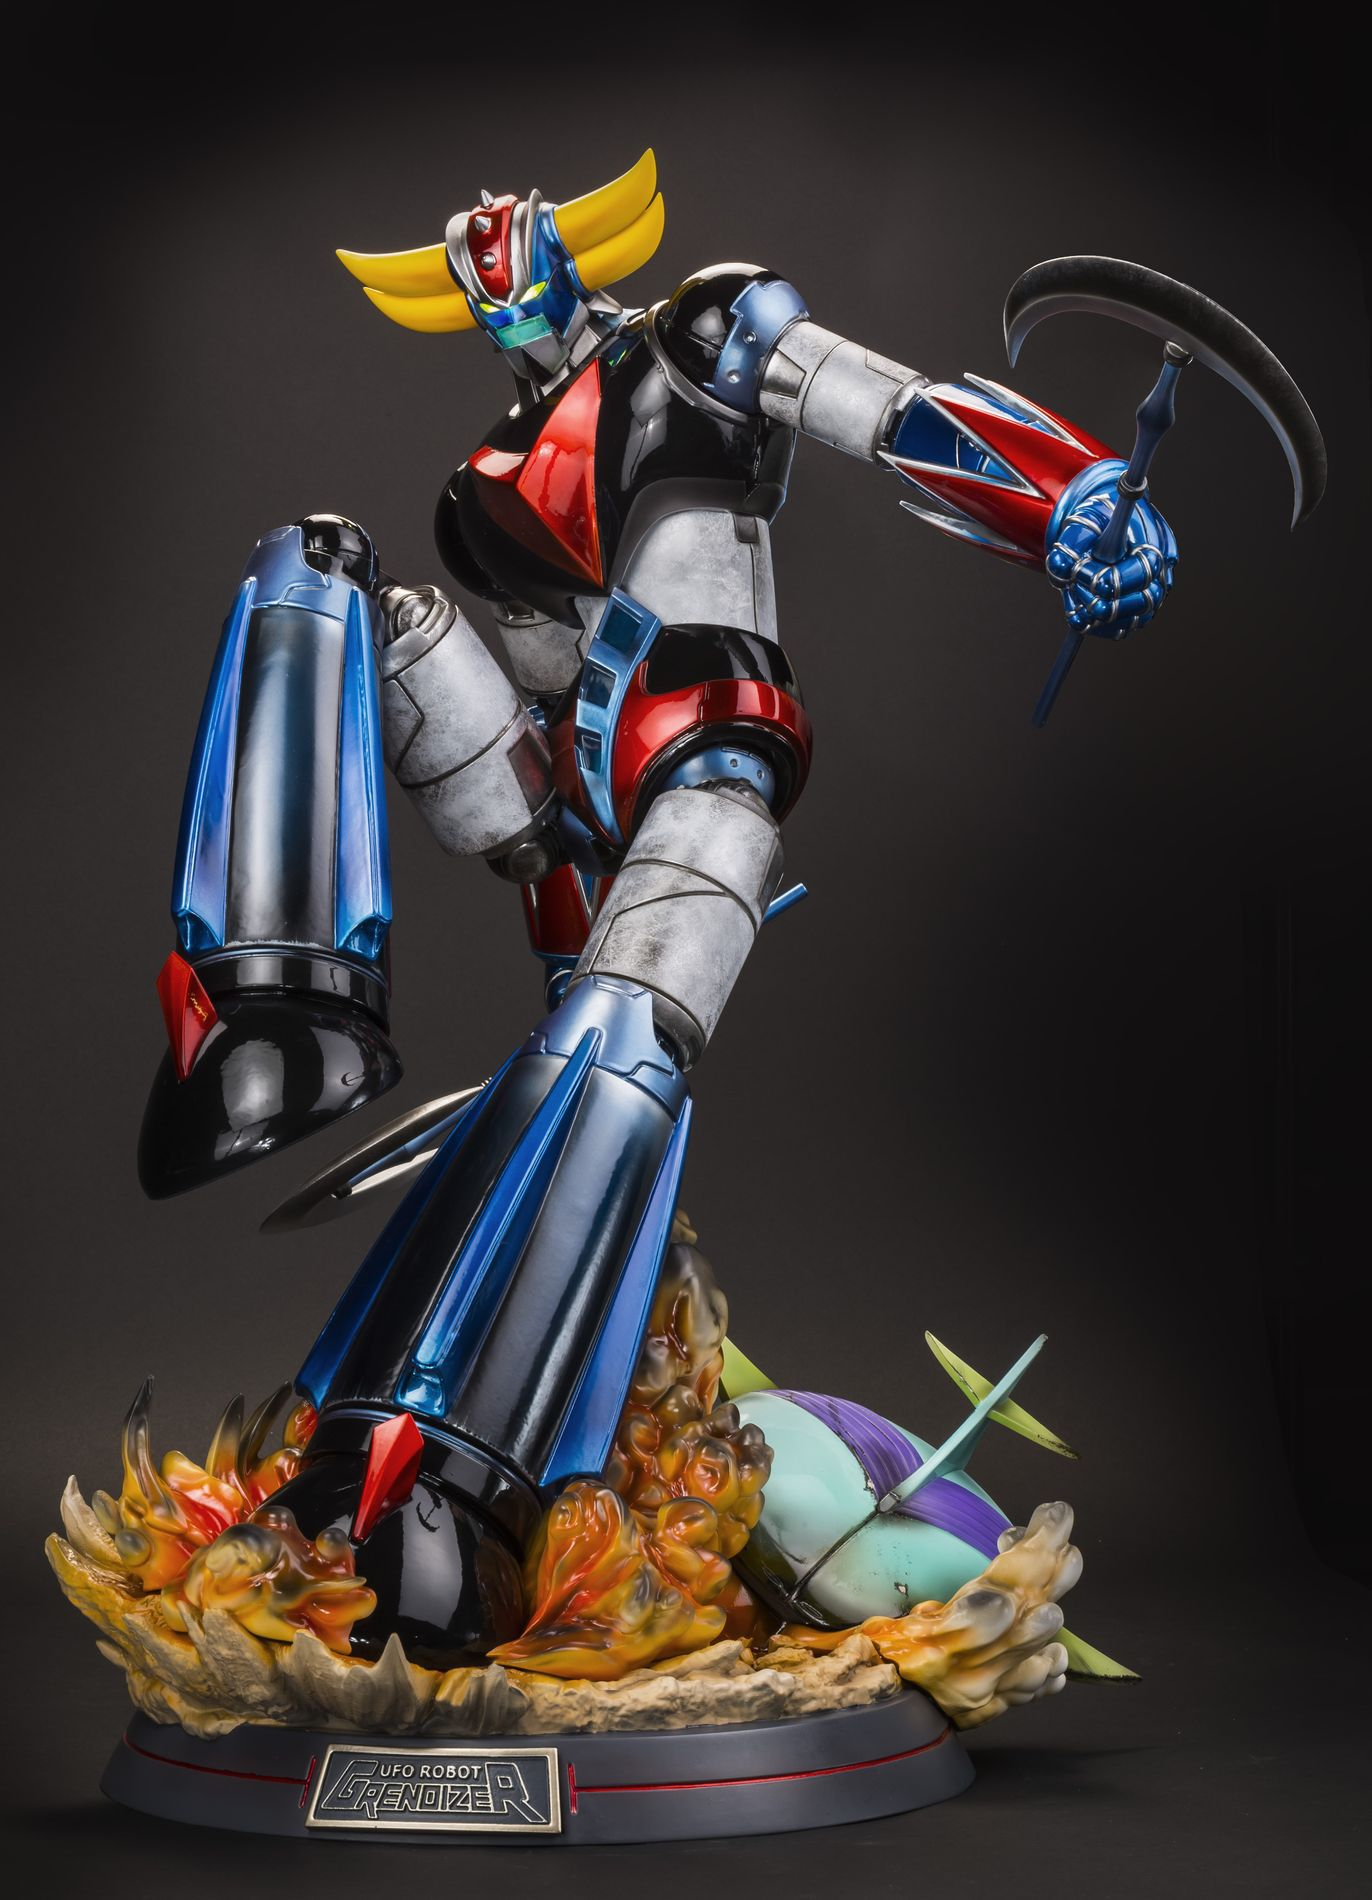 HD Quality Wallpaper | Collection: Anime, 1372x1900 Ufo Robot Grendizer